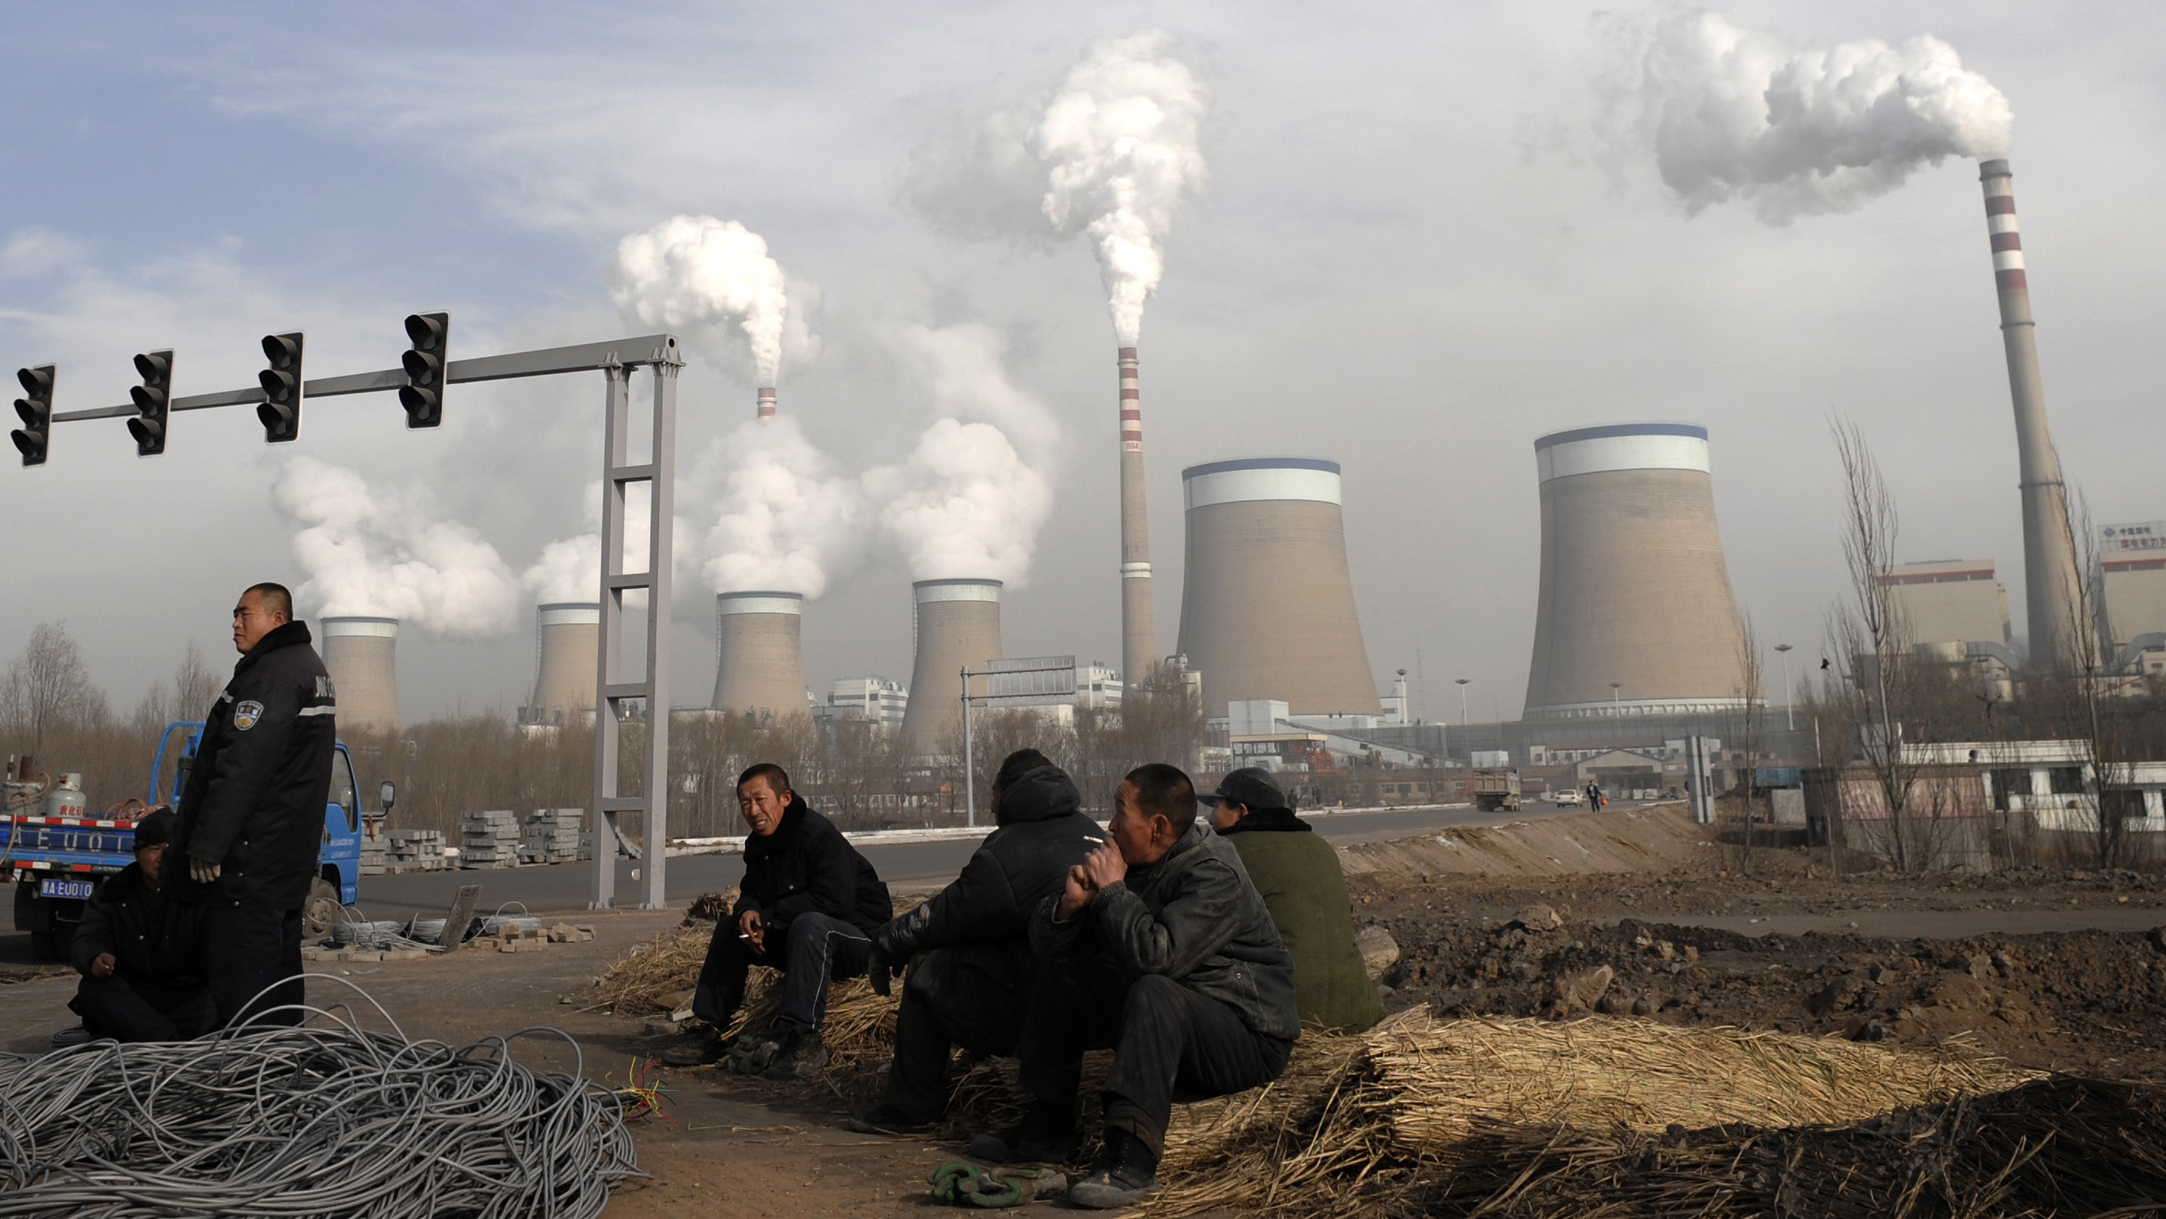 In this Dec. 3, 2009 file photo, Chinese workers take a break in front of the cooling towers of a coal-fired power plant in Dadong, Shanxi province, China. China told the United States on Wednesday, March 10, 2010, to make stronger commitments on climate change and provide environmental expertise and financing to developing nations. (AP Photo/Andy Wong